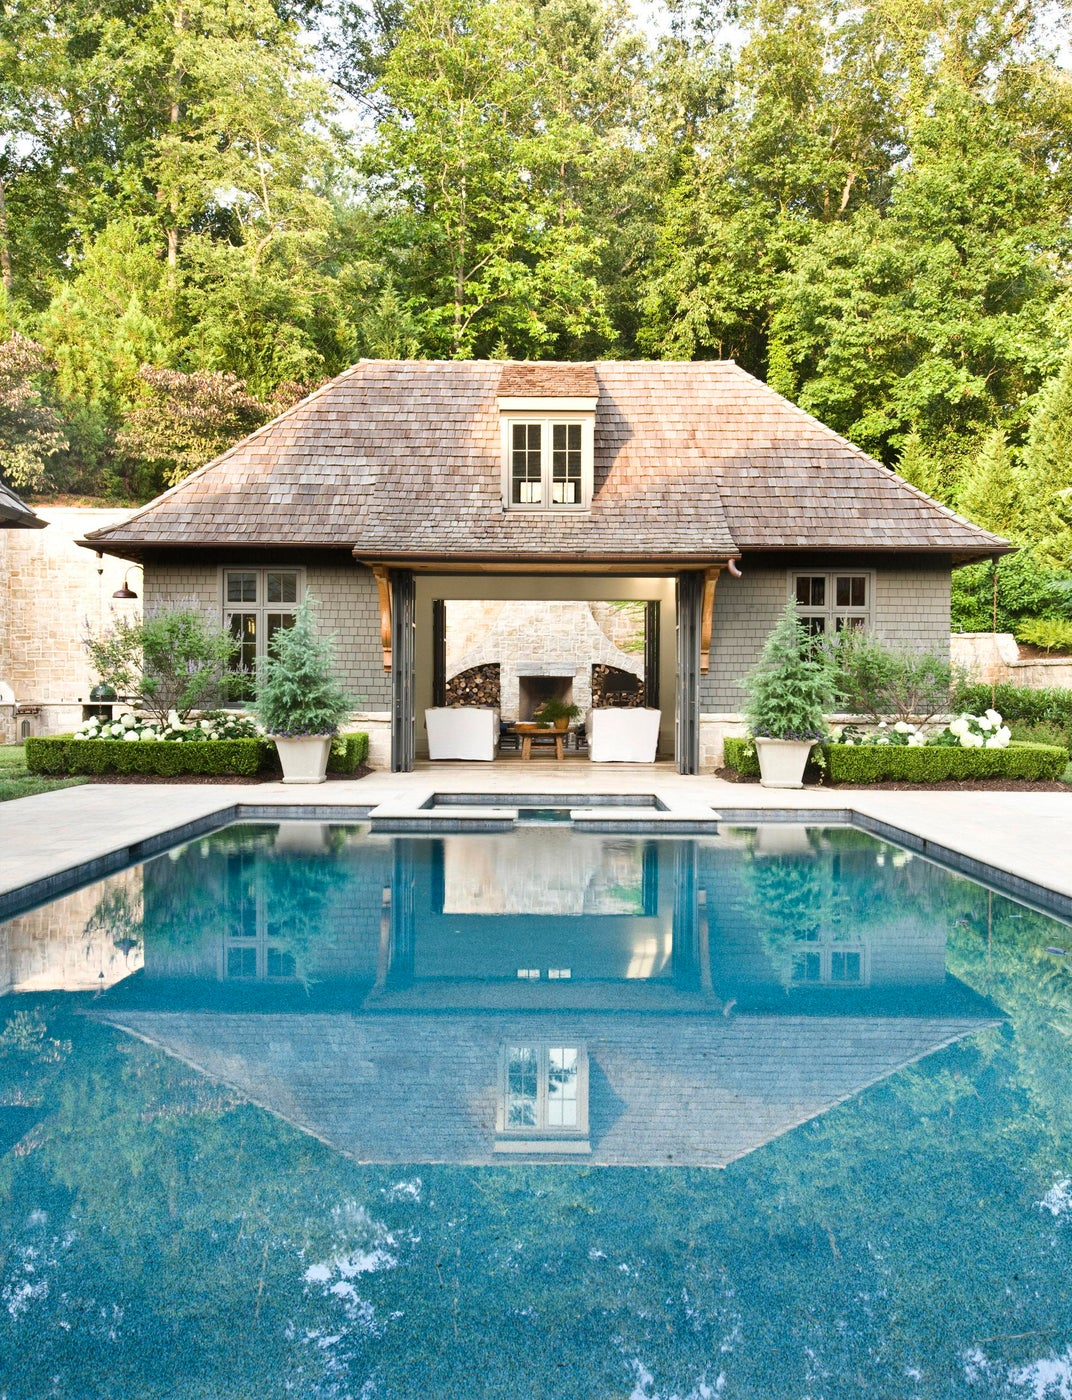 Authentic poolhouse and pool